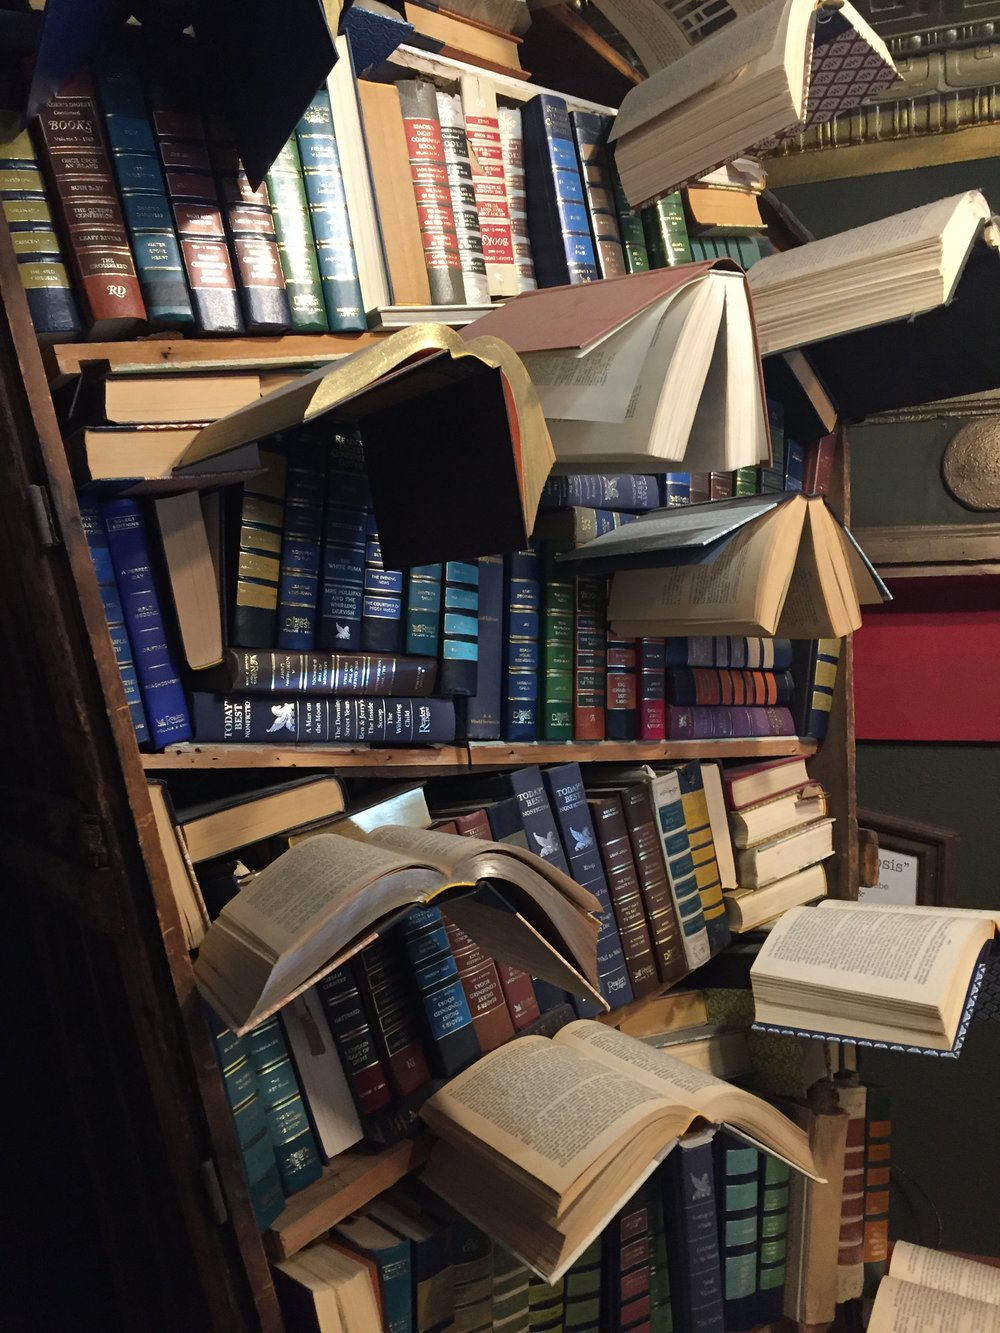 [image description: An up close look at the aforementioned sculpture. The books open like birds are more clearly visible.]